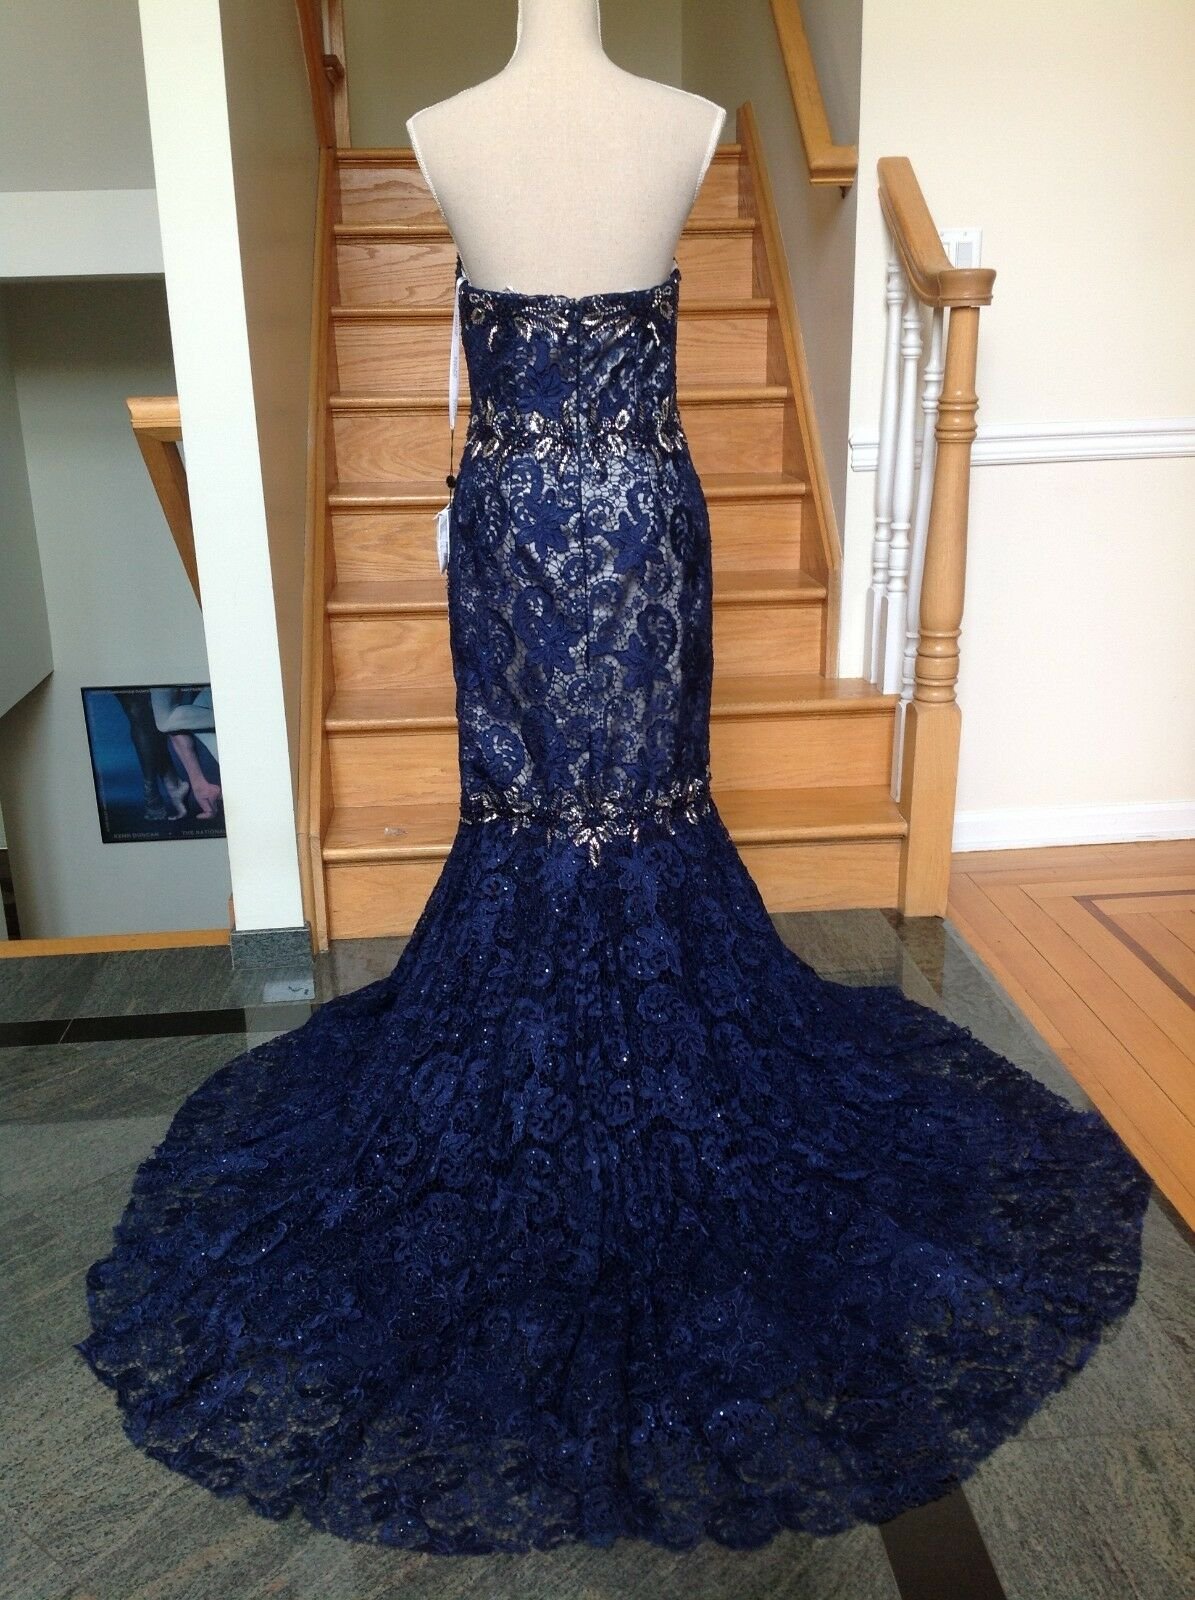 NWT  550 JOVANI 92626 Long Navy Lace Mermaid    6 12 Gown Dress PAGEANT Prom a97e18